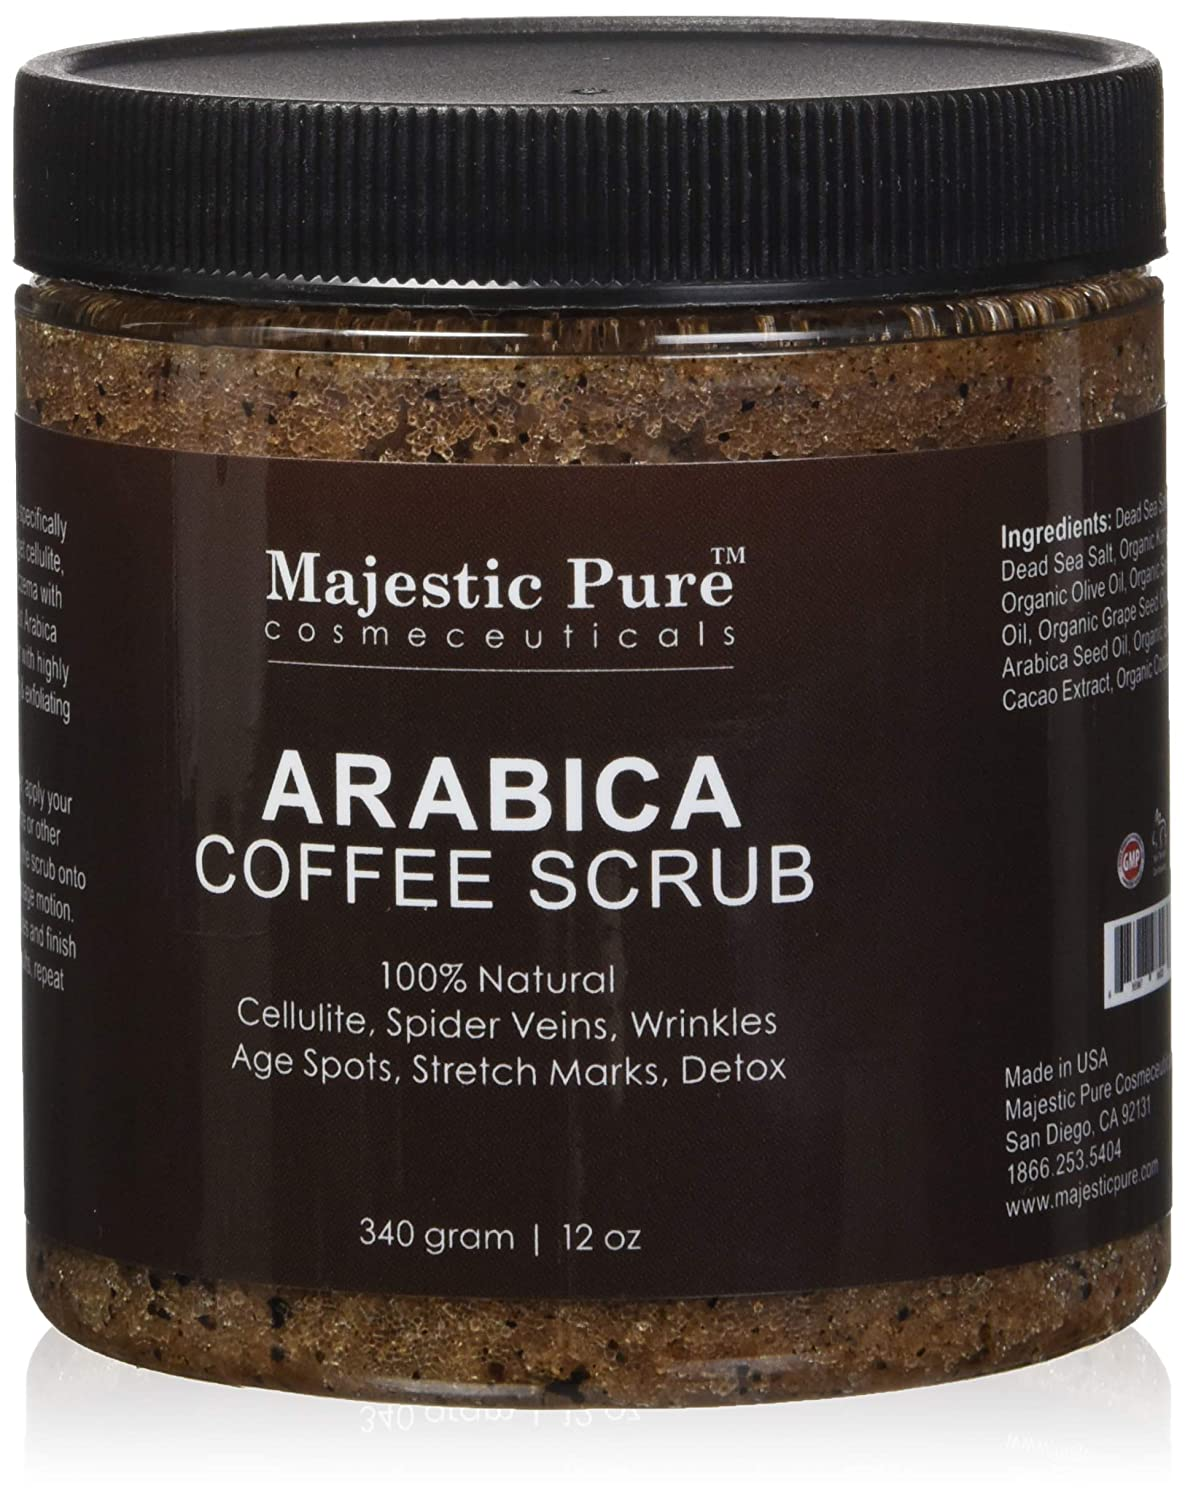 Arabica Coffee Scrub From Majestic Pure Helps Reduce Cellulite, Wrinkles, Stretch Marks, Spider Veins, Acne & Age Spots, 100% Natural Treatment & Care, Skin Detox, 12 Oz, Try Risk Free Today!